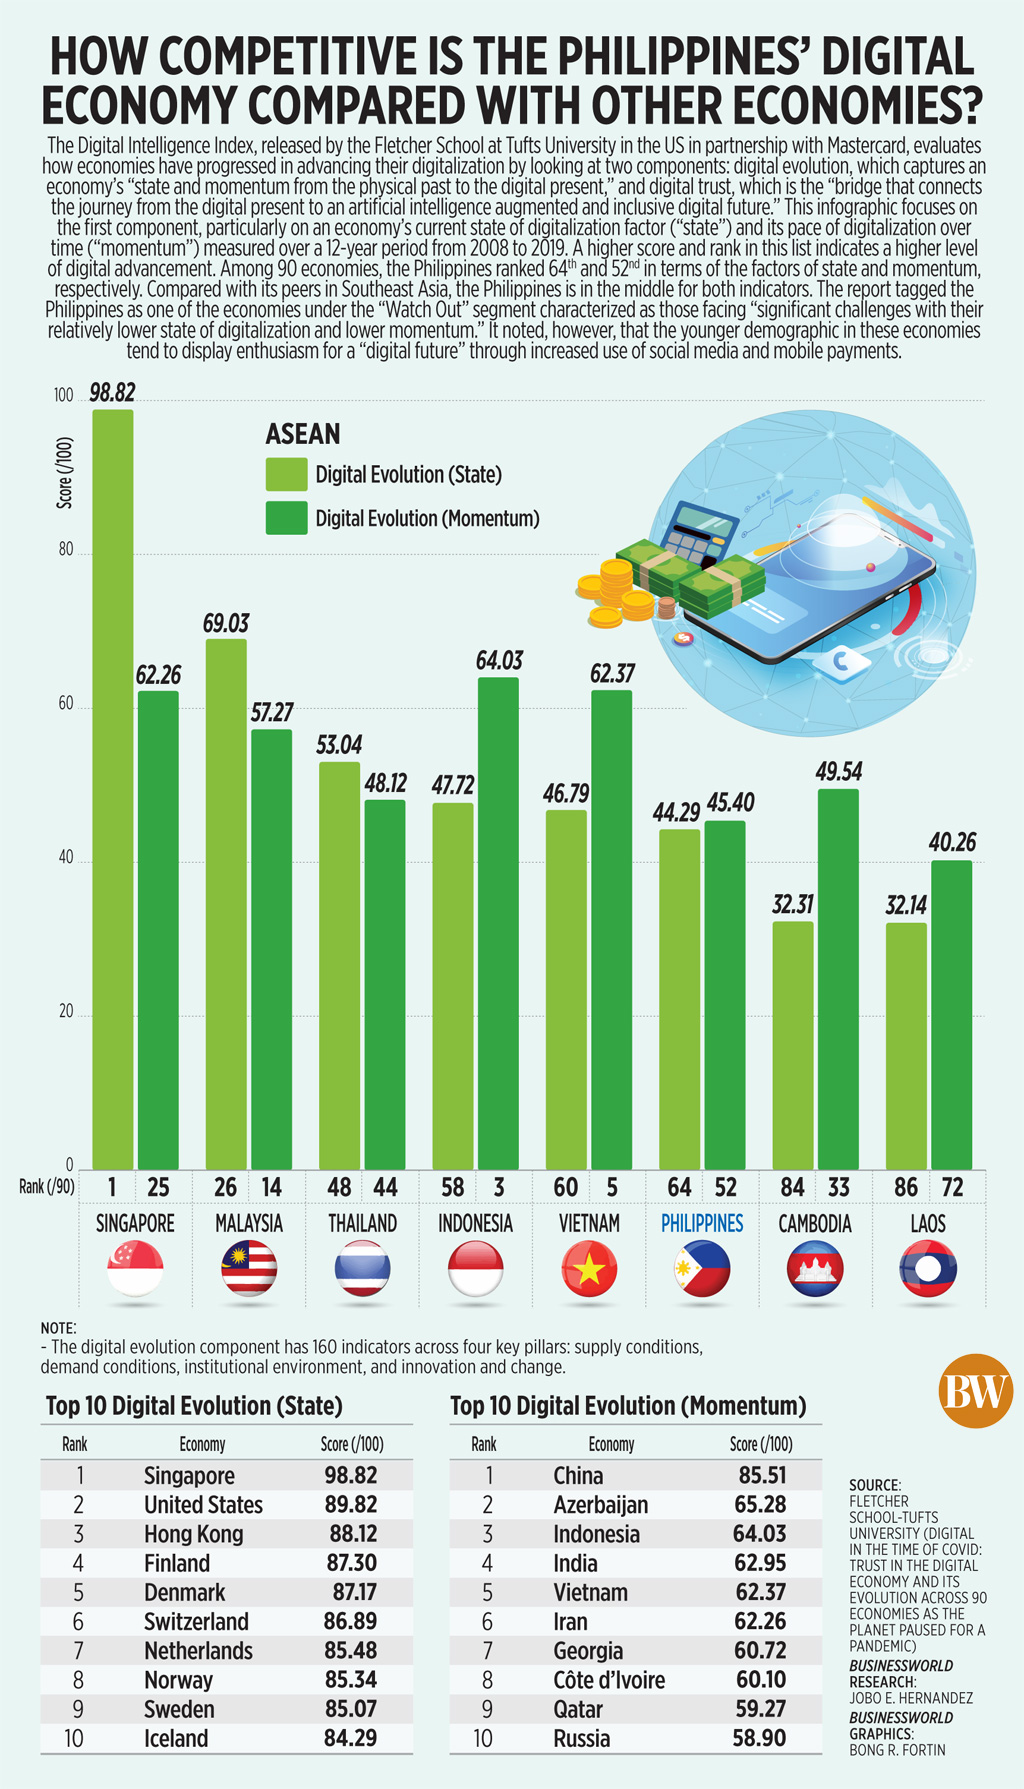 How competitive is the Philippines' digital economy compared with other economies?